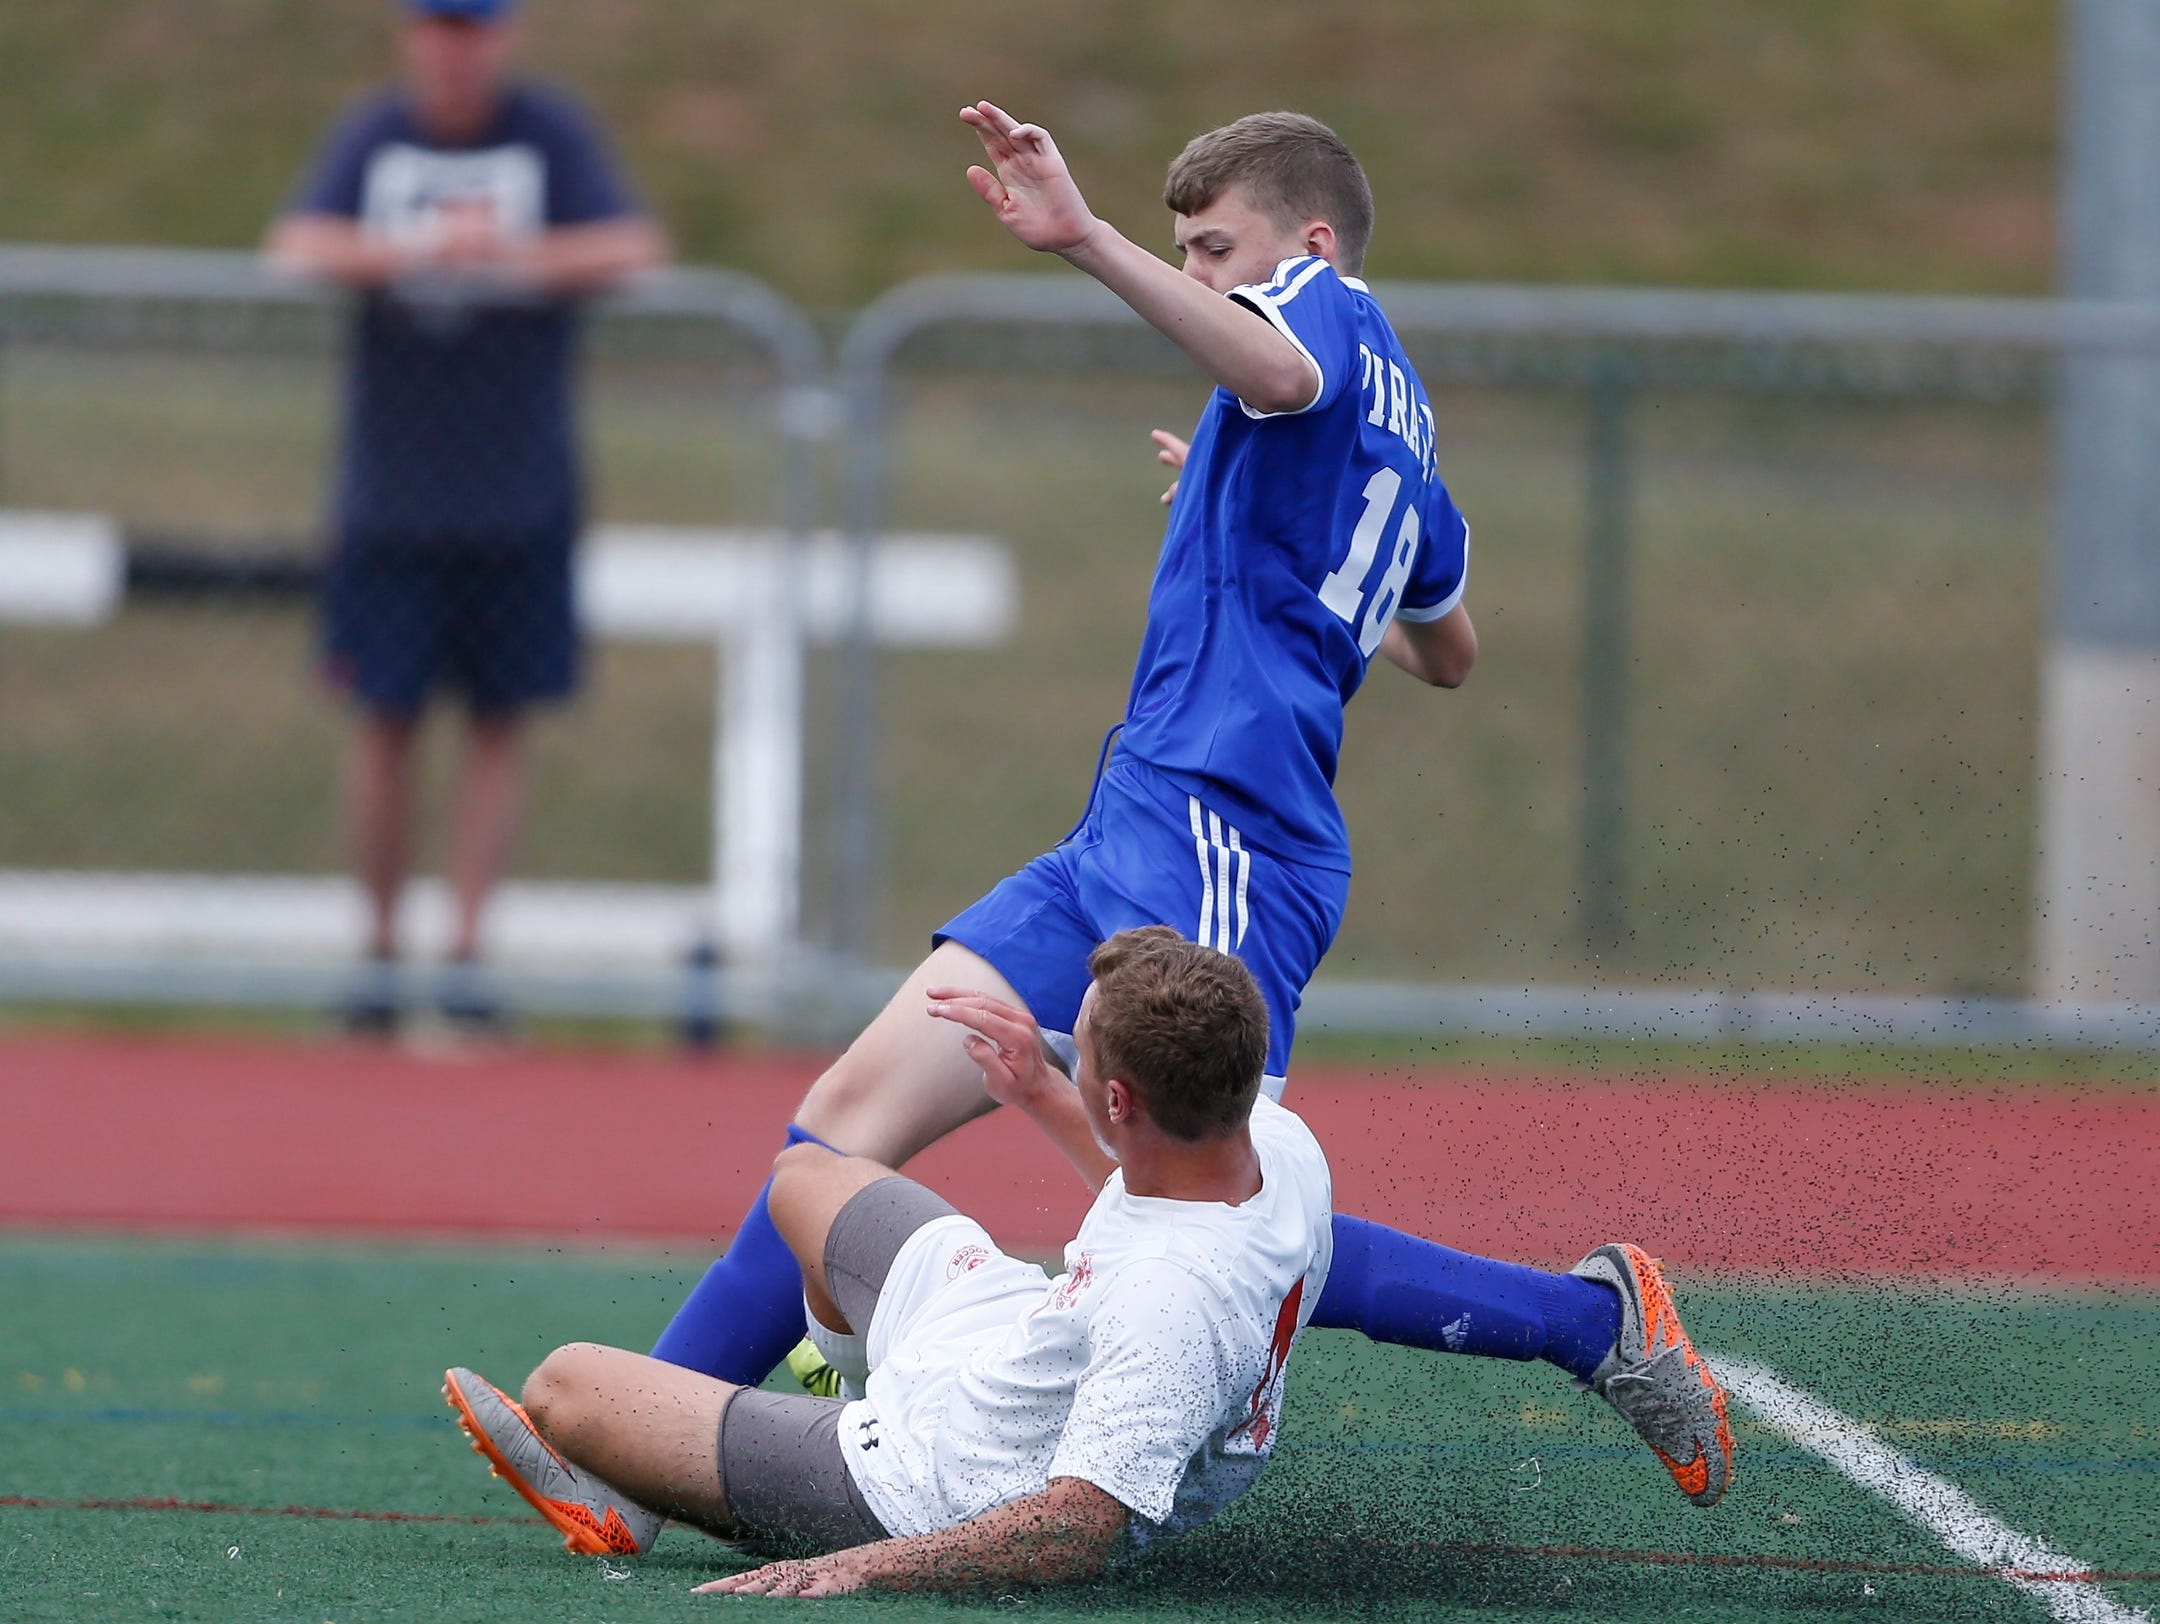 Tappan Zee's Joseph Stahl (4) puts a slide tackle on Pearl River's Owen O'Toole (18) during a boys soccer action at Tappan Zee High School in Orangeburg on Saturday, September 24, 2016.